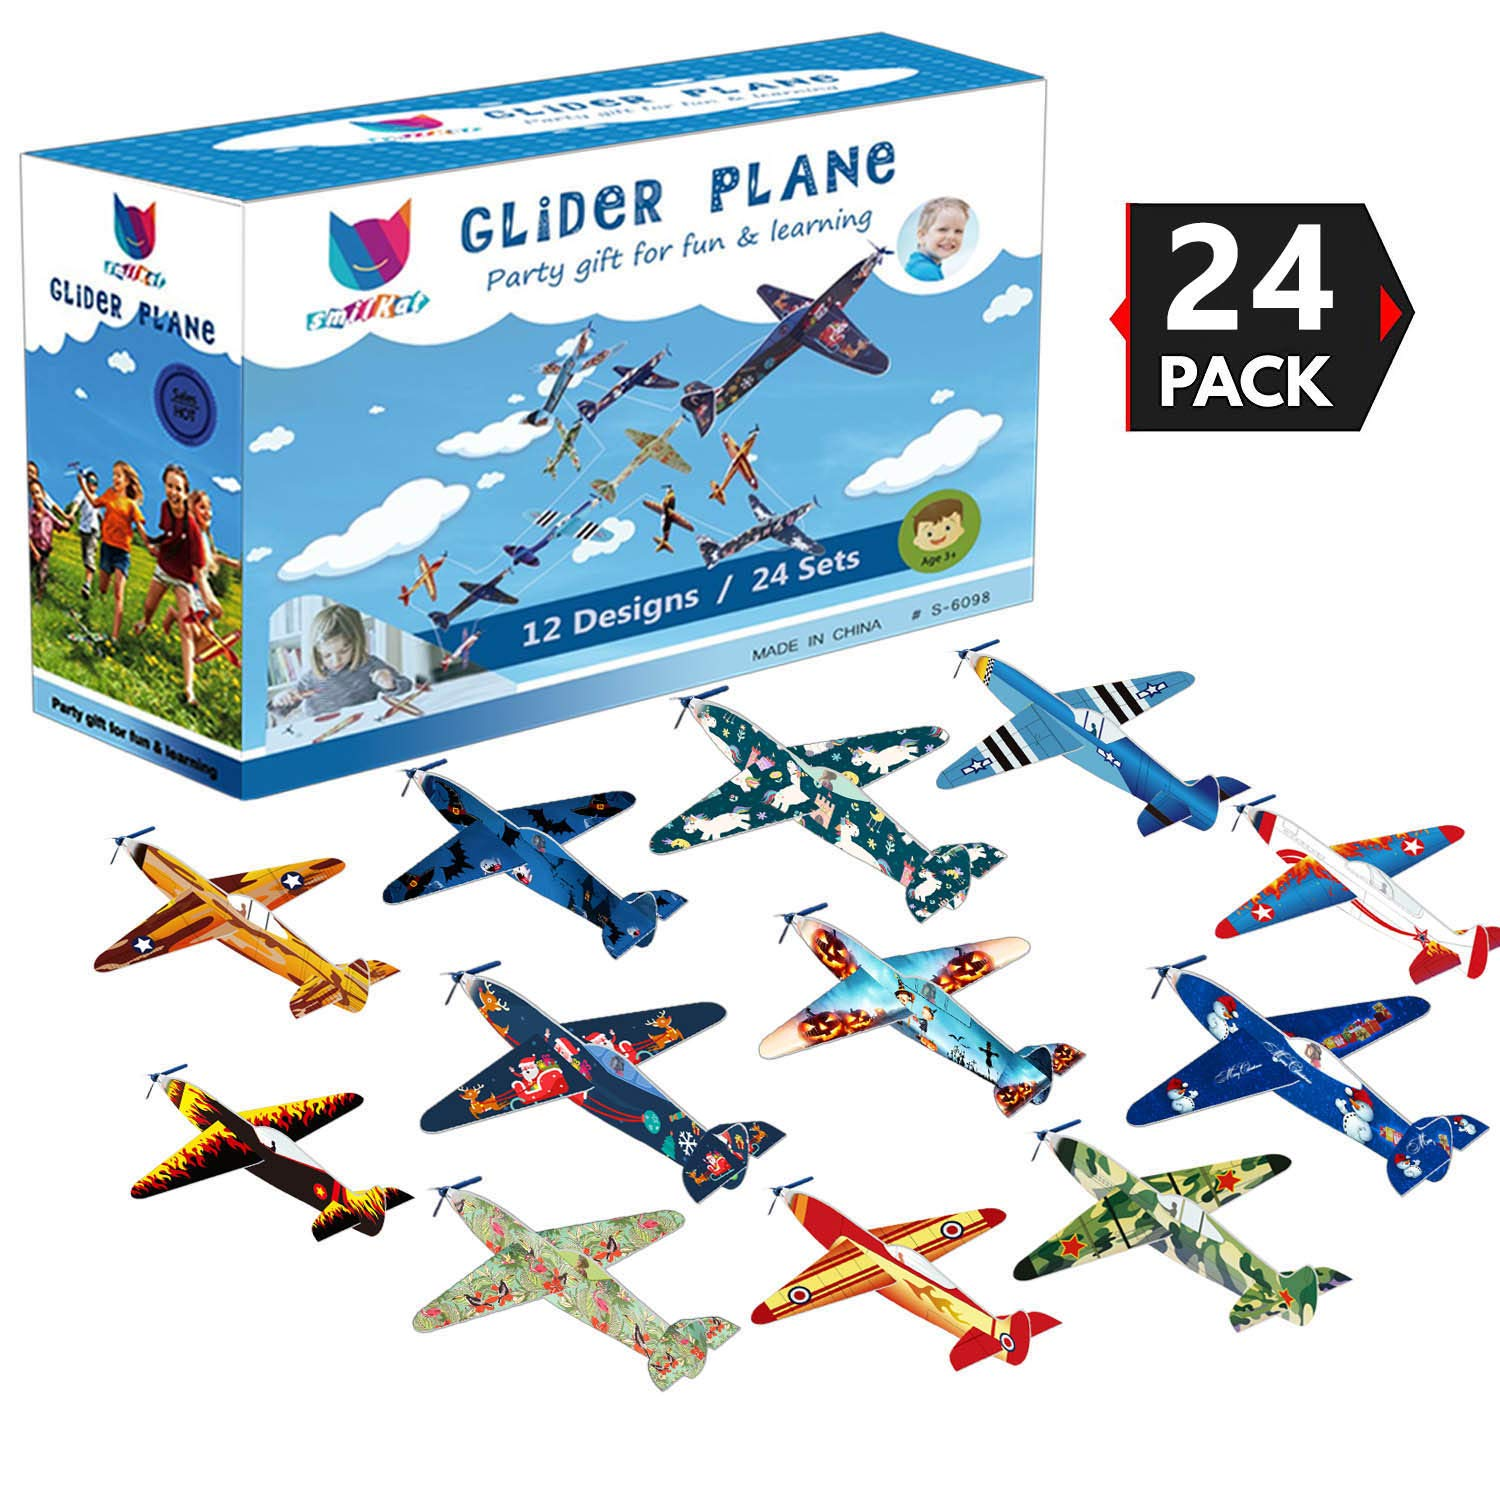 Smilkat Glider Plane Party Favors - 12 New Models 24 Pack 8 inch Flying Styrofoam Airplanes, Easy Assembly, Kids Toy for Birthday Party, School Classroom Rewards Carnival Prizes by Smilkat (Image #7)